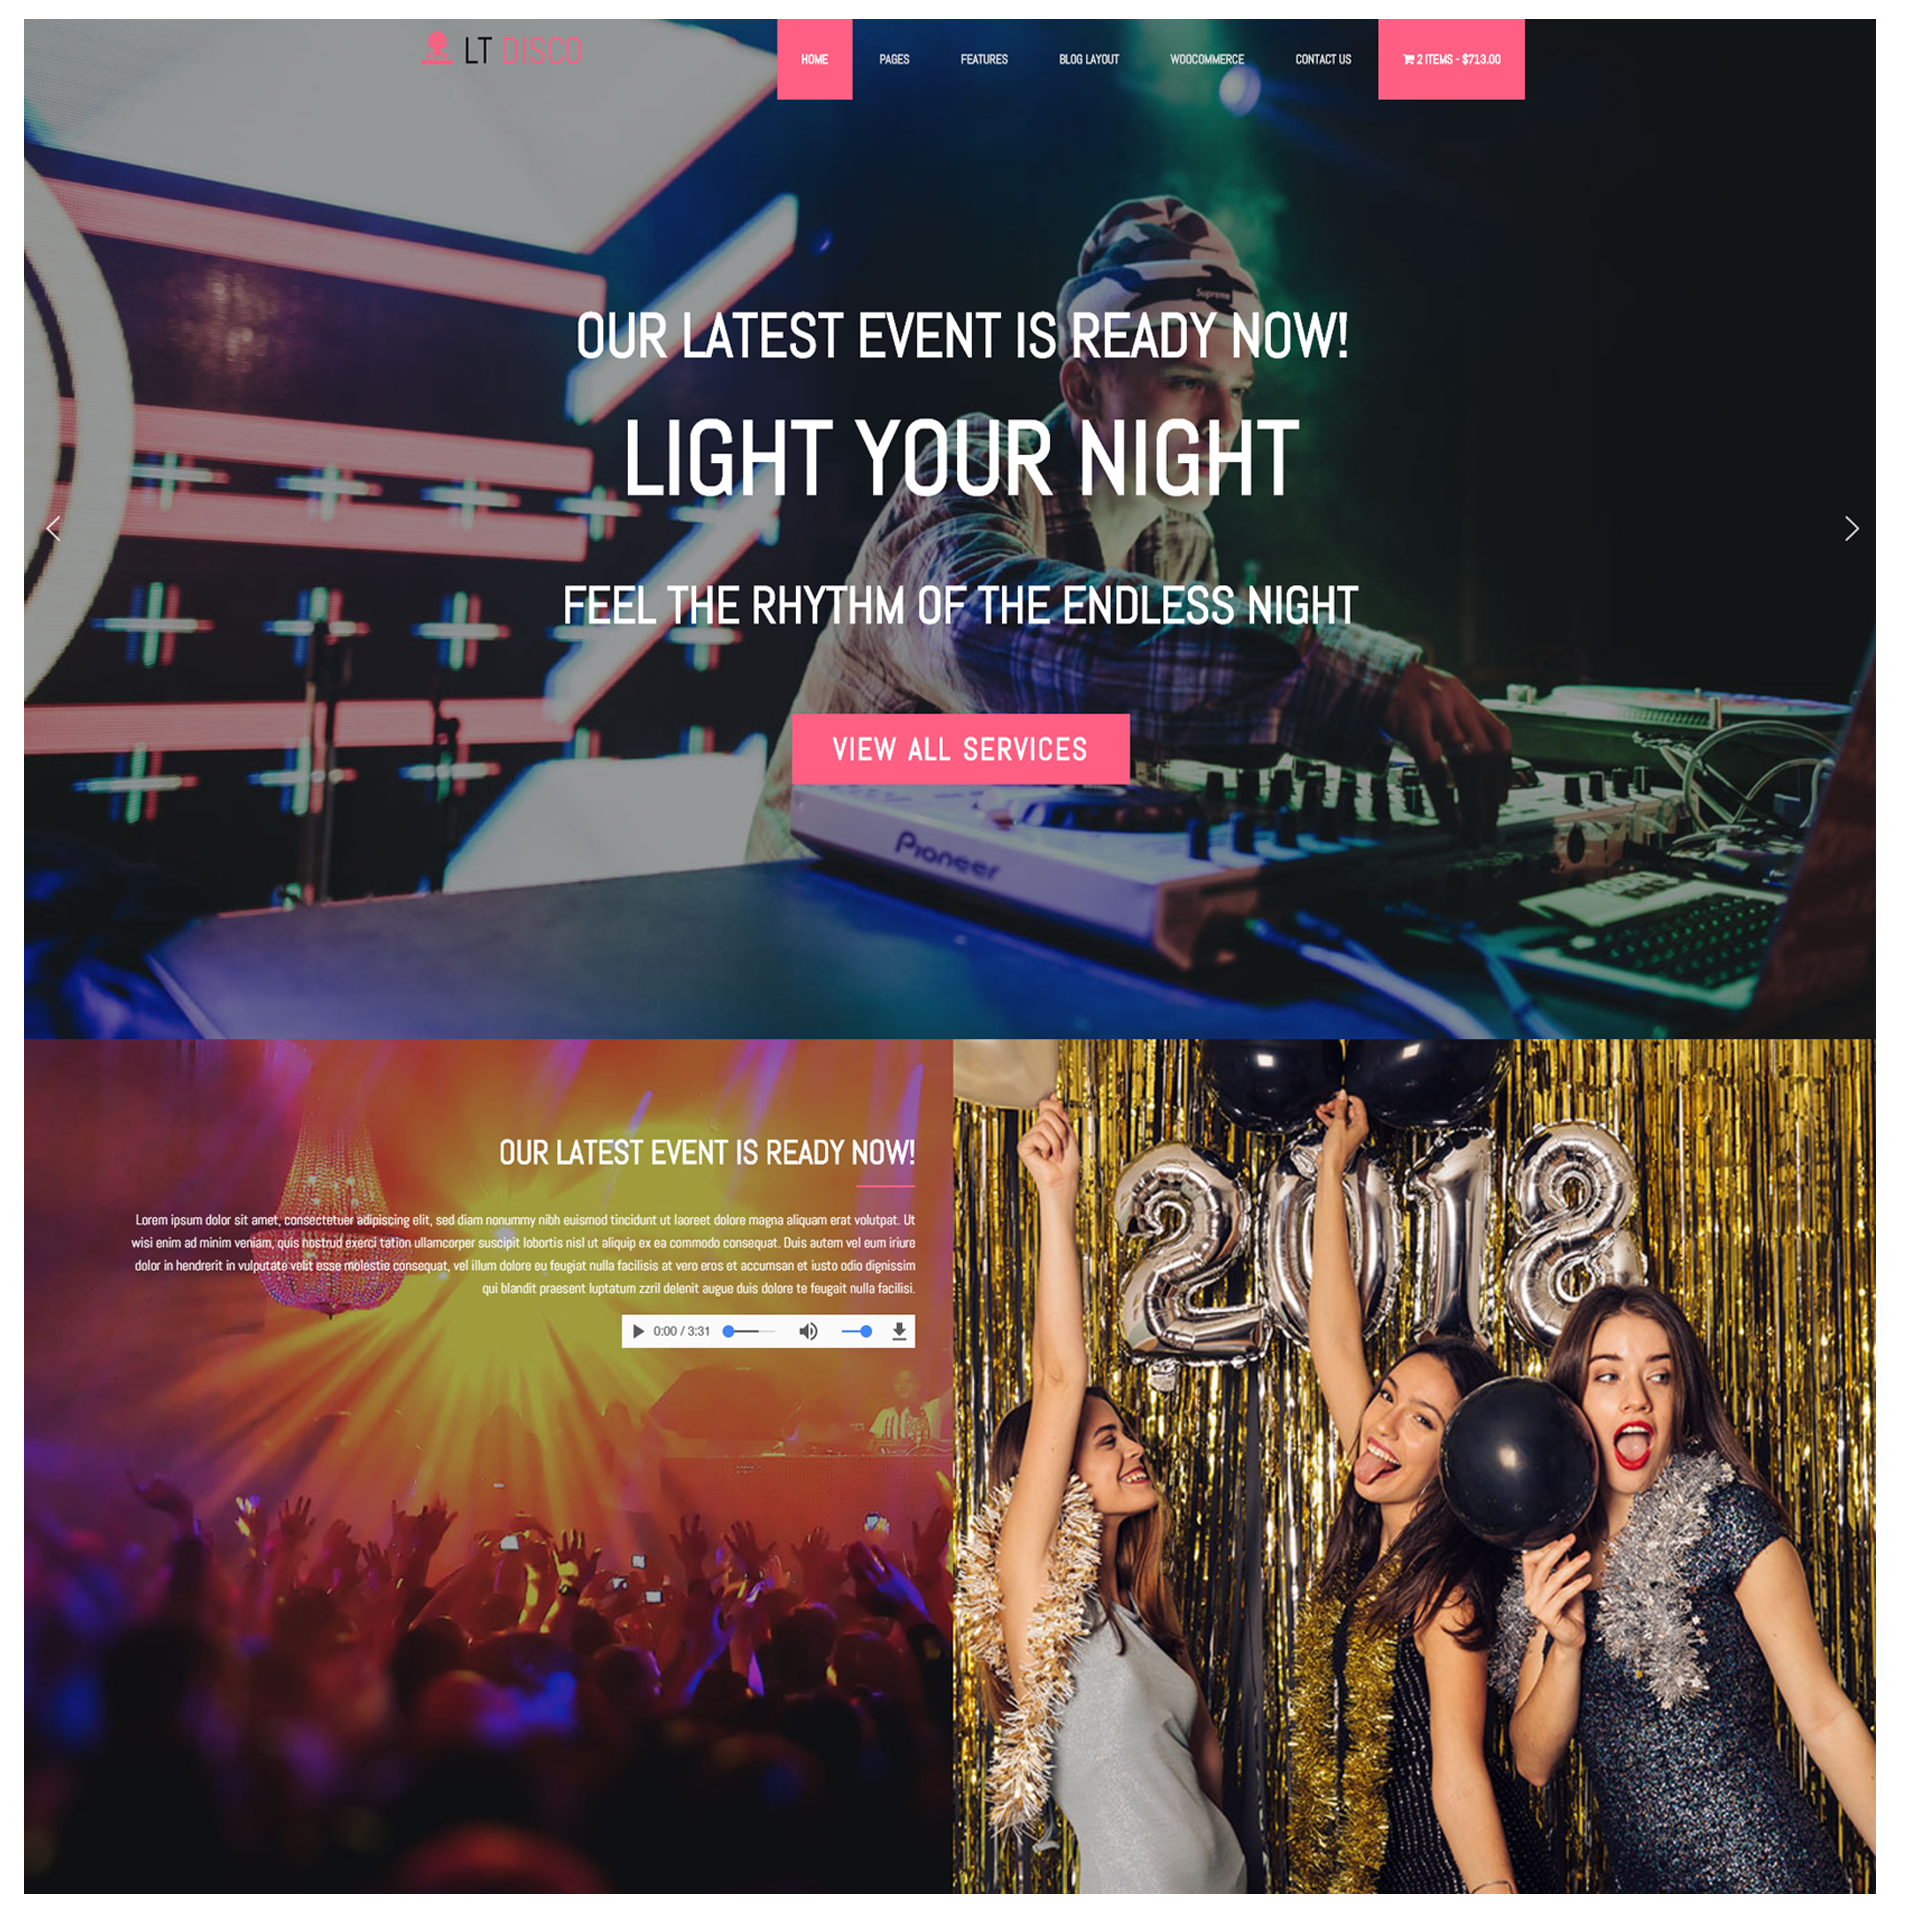 Lt disco free responsive nightclub wordpress theme lt disco free responsive wordpress theme screenshot thecheapjerseys Image collections